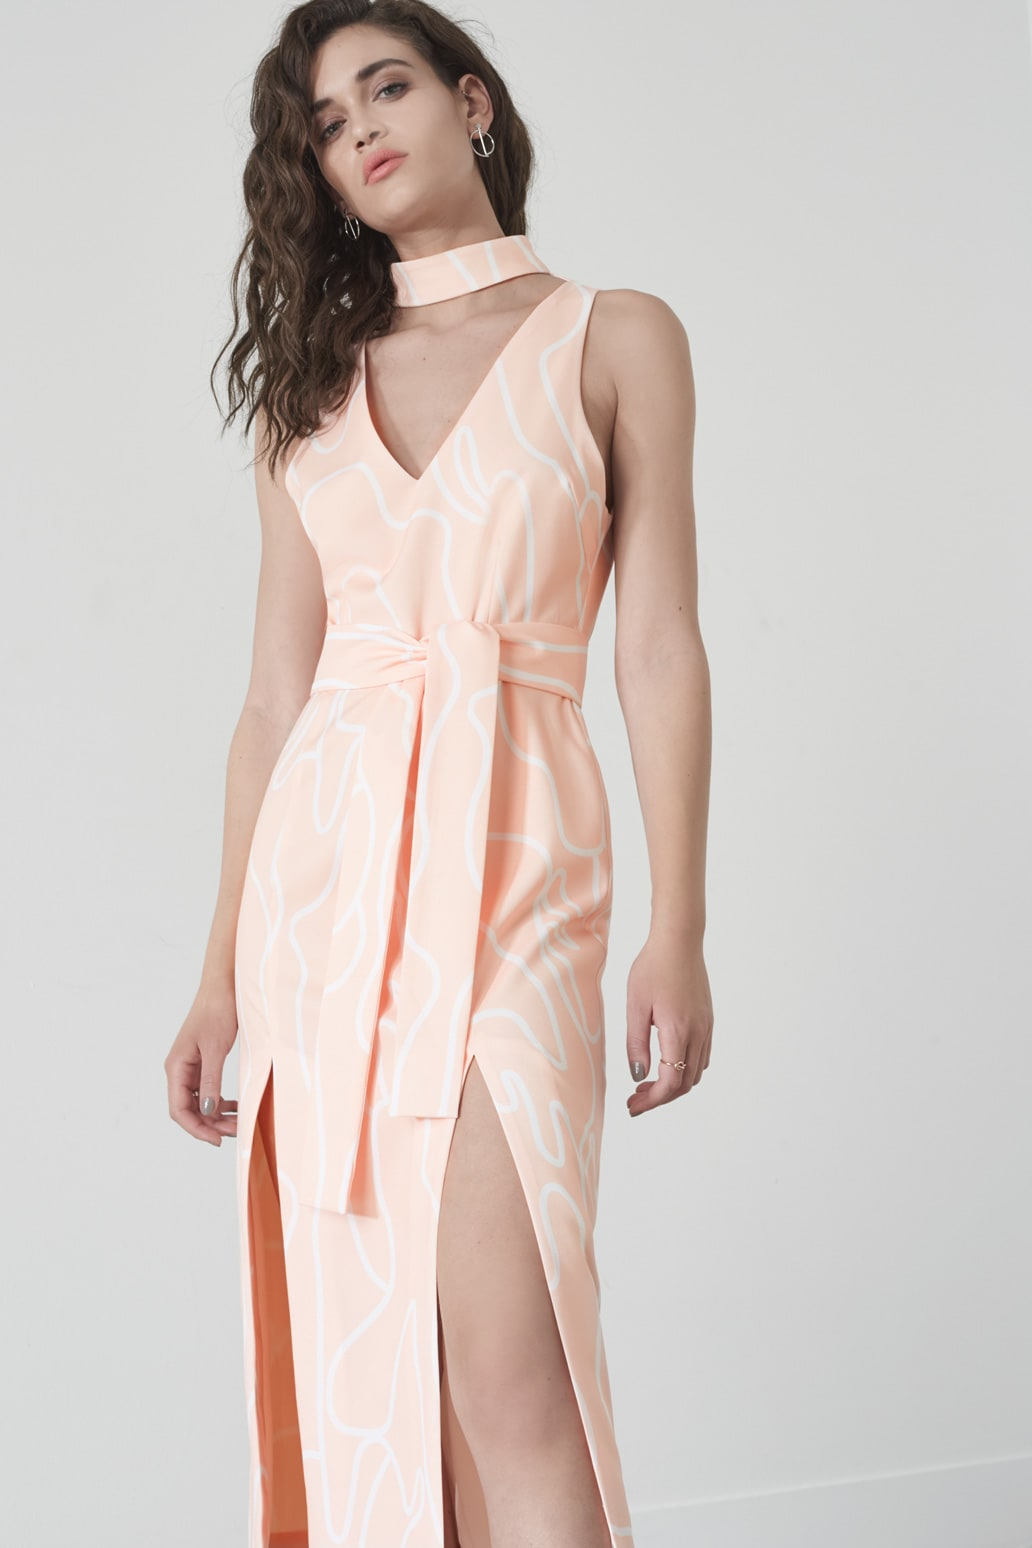 Squiggle Print Double Split Dress in Nude & White